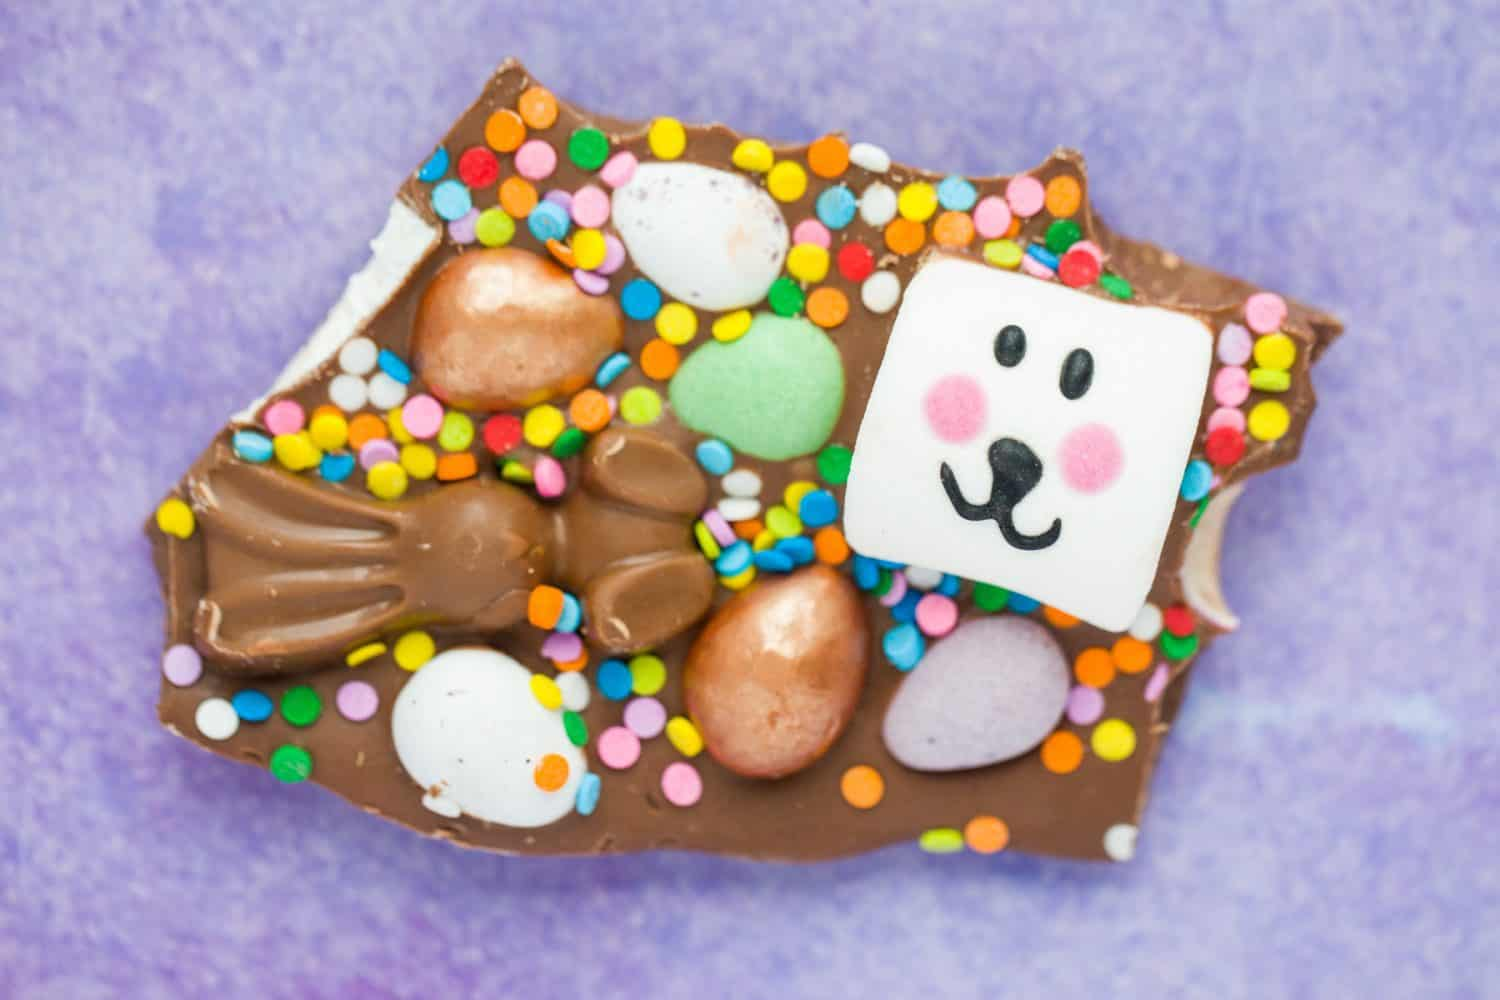 A piece of chocolate with a malteser bunny, mini eggs and a marshmallow bunny.